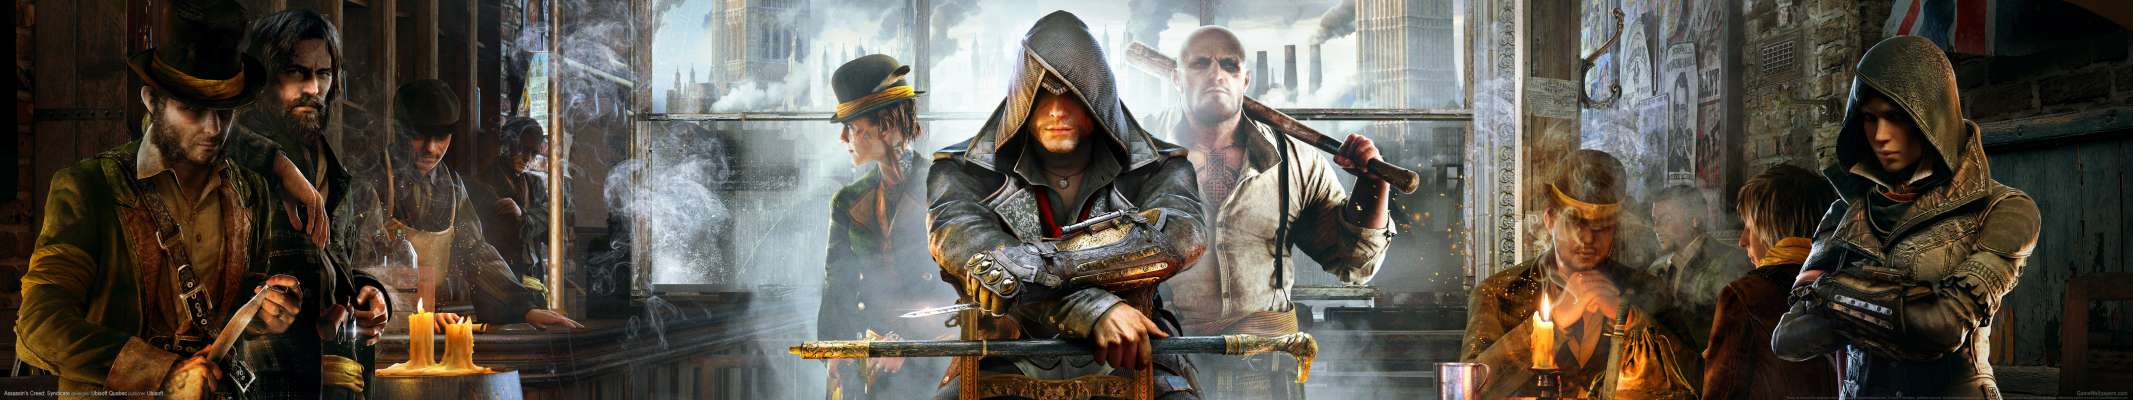 Assassin's Creed: Syndicate triple screen fondo de escritorio